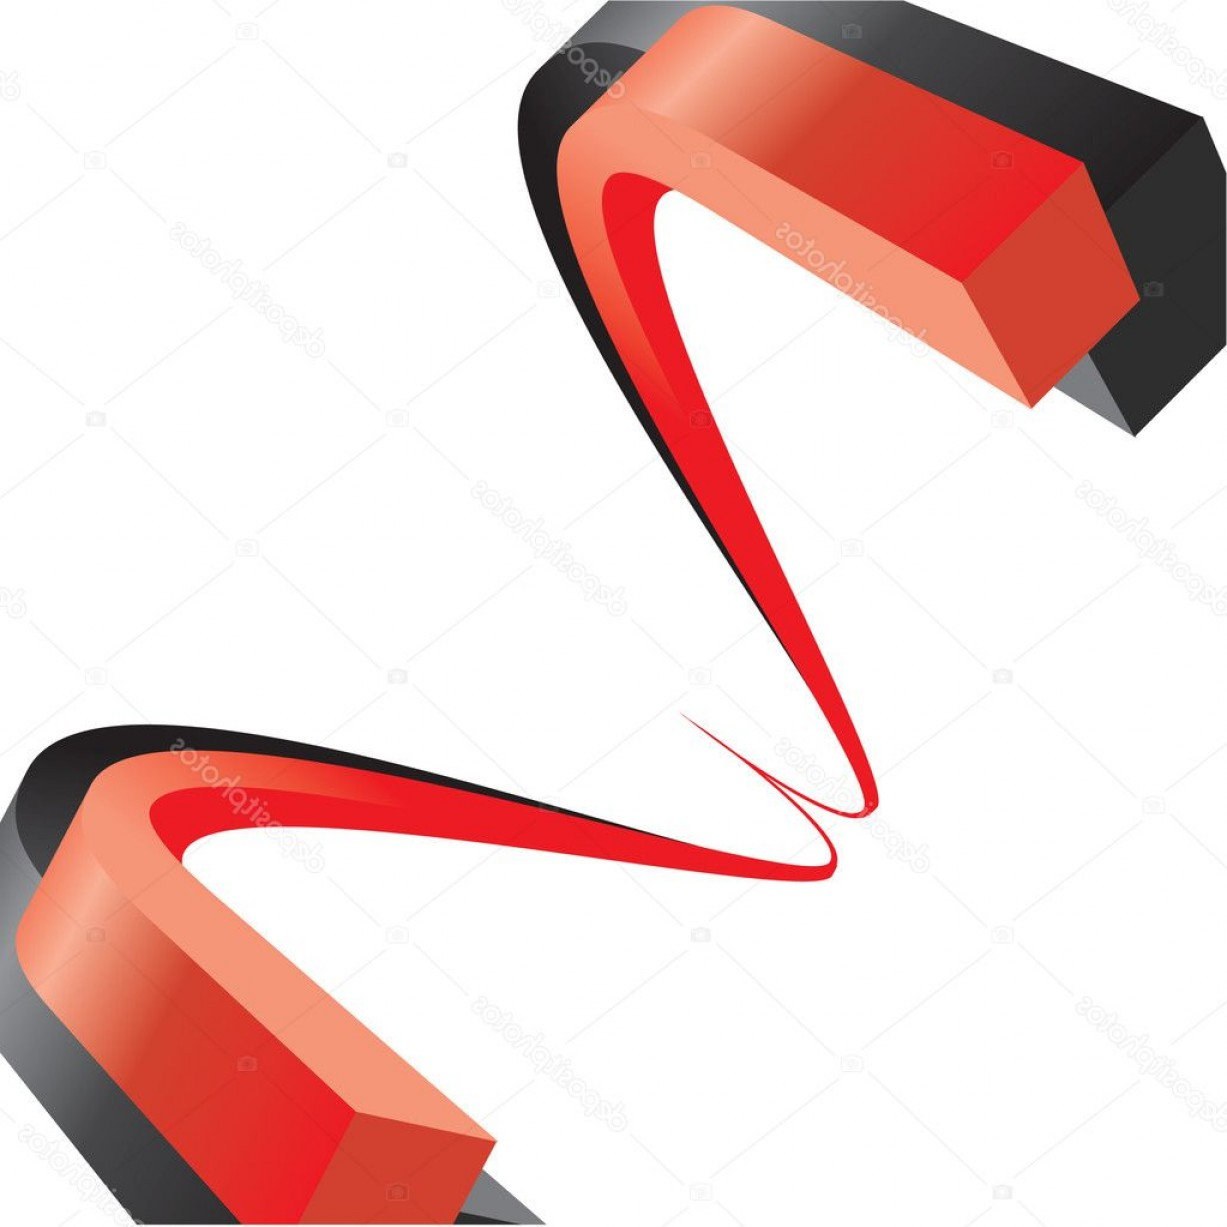 Black Abstract Lines Vector: Stock Illustration Red And Black Abstract Lines